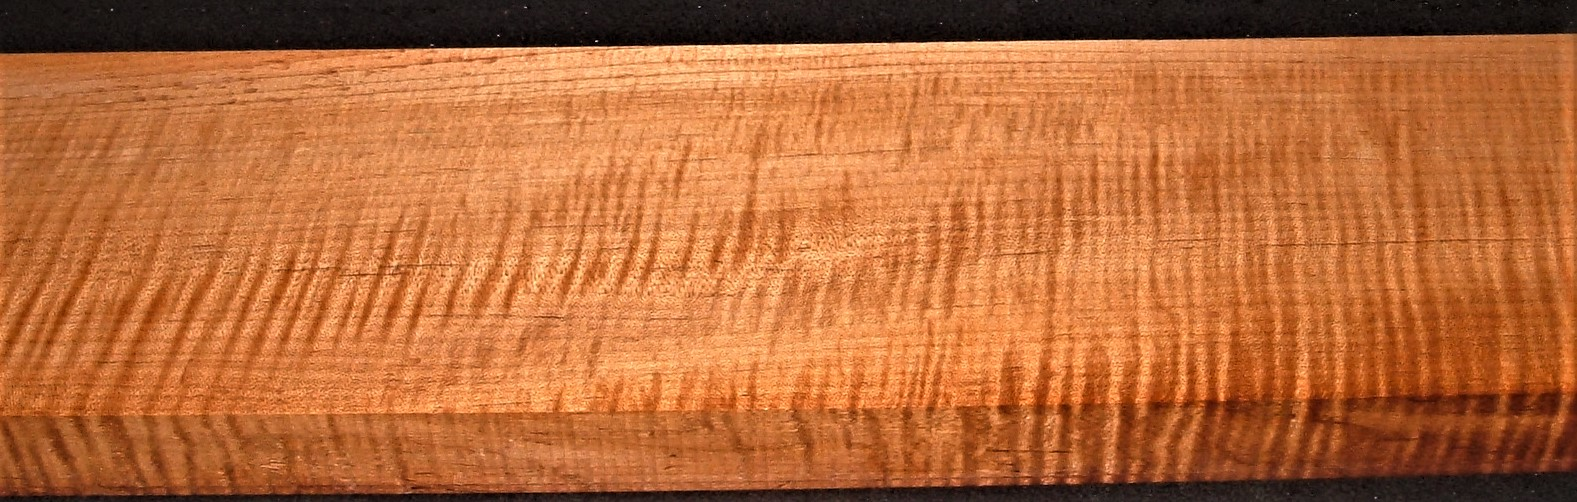 QRM2010-309JK, 1-11/16x6-1/2x50, Quartersawn Roasted Curly Maple